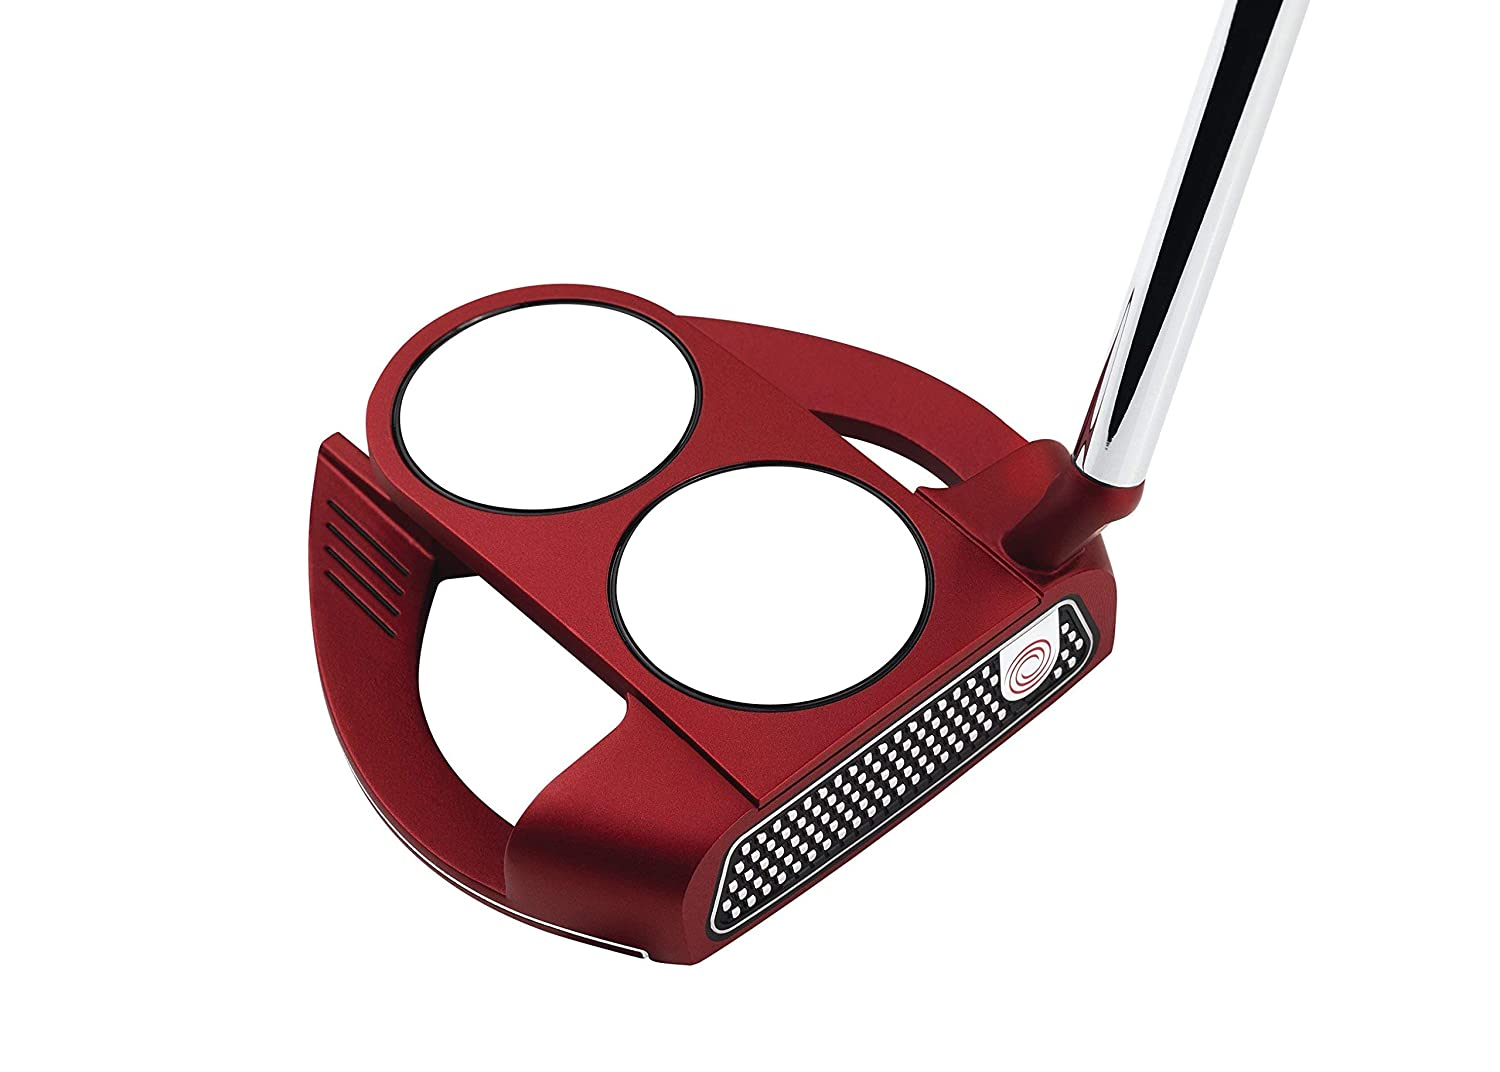 Odyssey O-Works Red 2-Ball Fang Slant Putter, 35 in Renewed